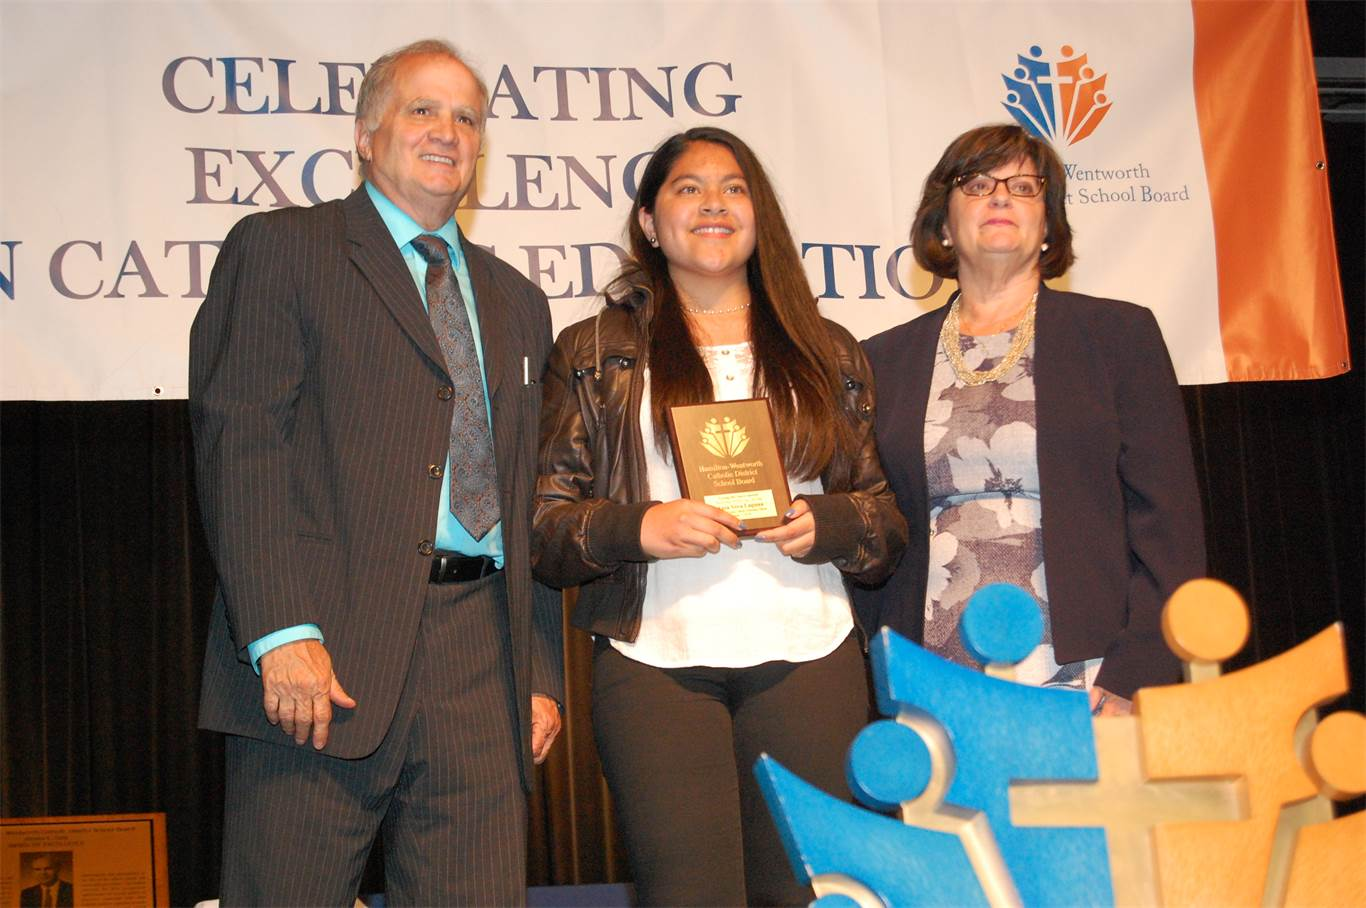 Grade 8 St. Clare of Assisi student Ania Vera Laguna is presented with a Living the Spirit Award by Trustees Paul DiFrancesco and Mary Nardini. The Award recognizes exemplary, well-rounded students.